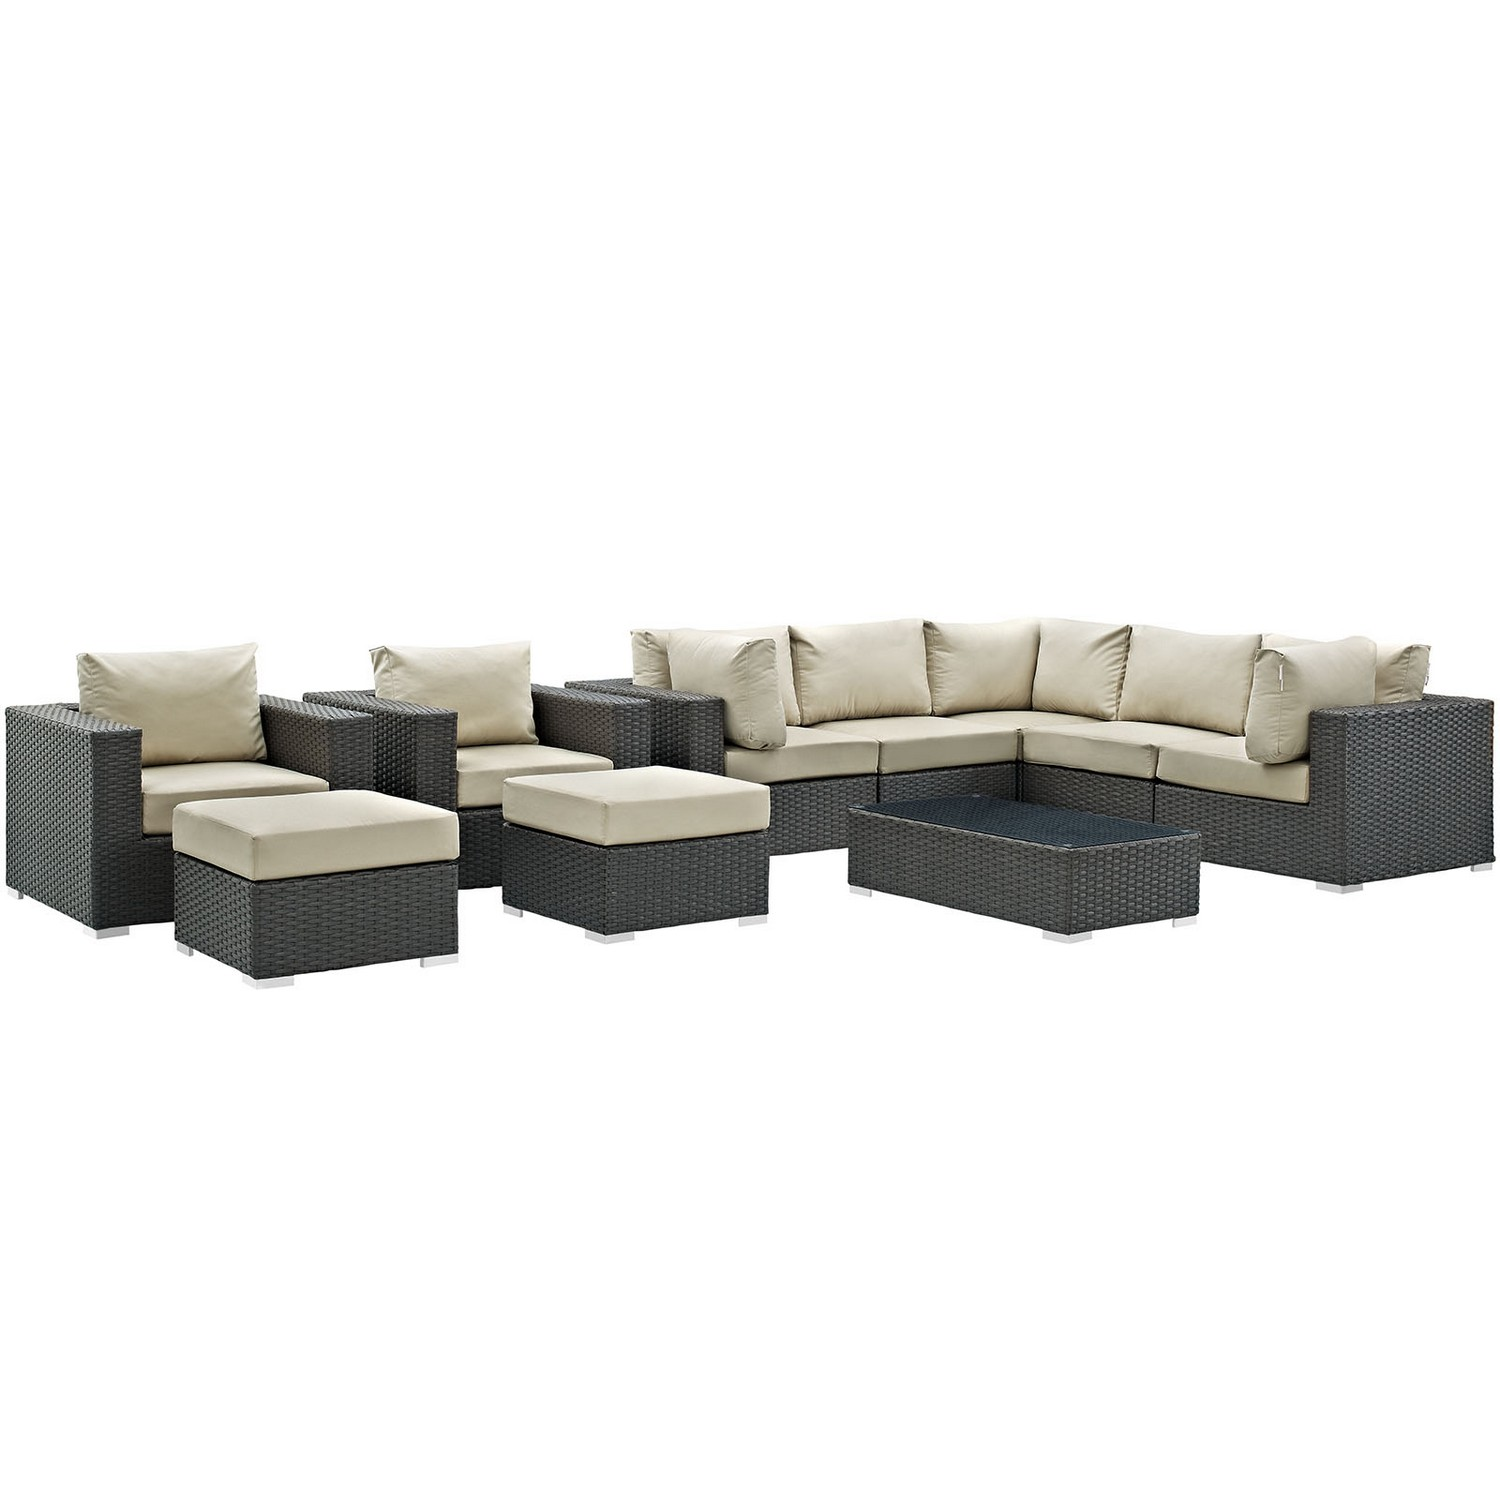 Modway Sojourn 10 Piece Outdoor Patio Sunbrella Sectional Set - Canvas Antique Beige